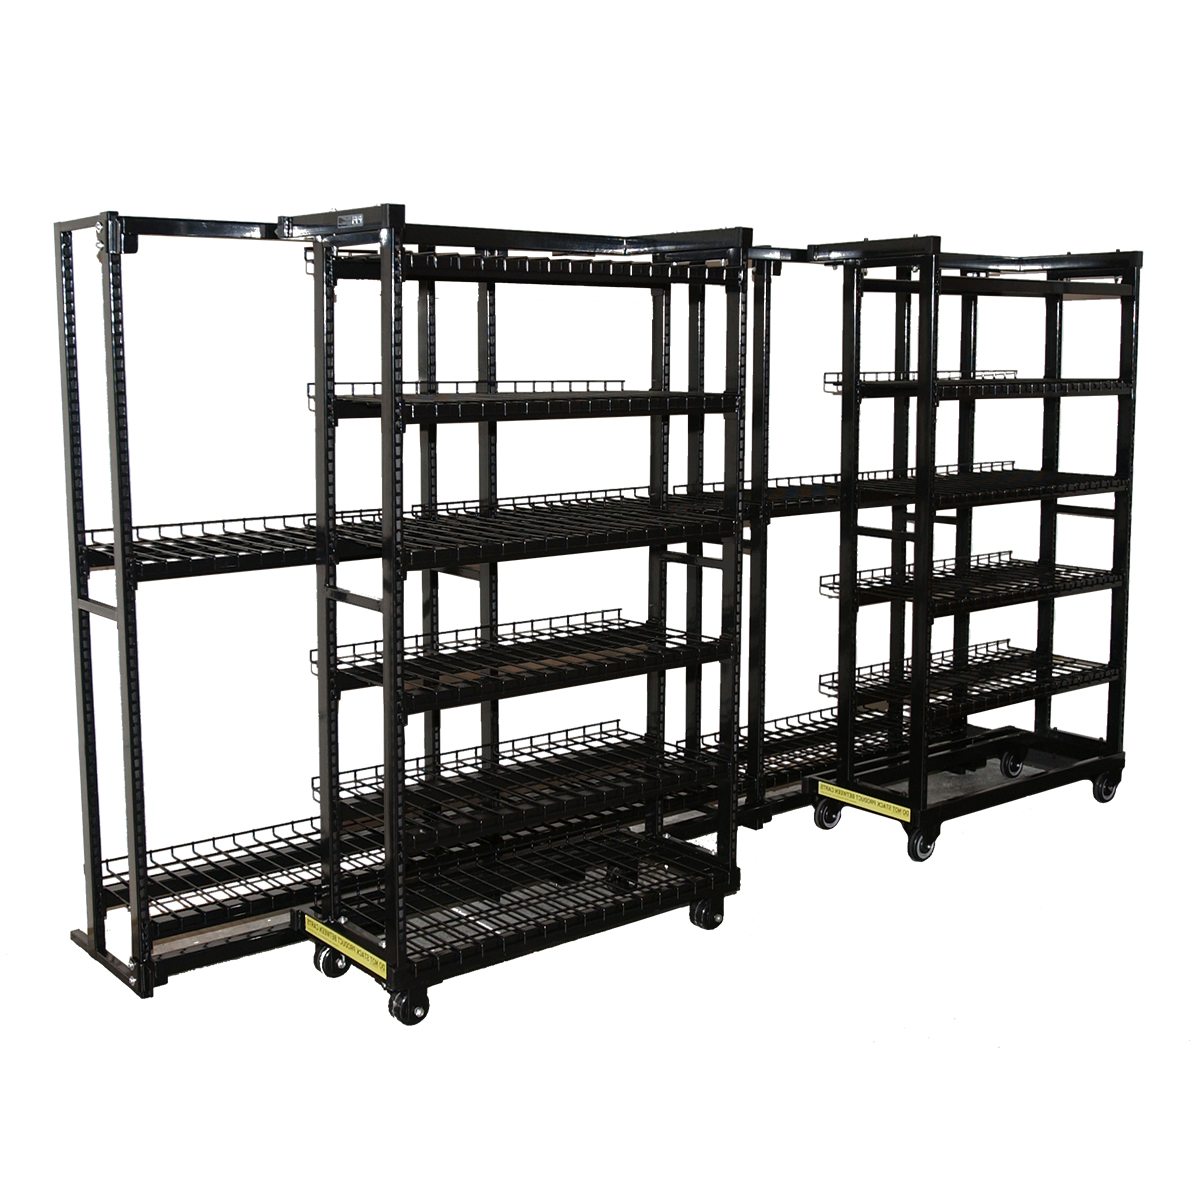 Stockmaster Shelving System